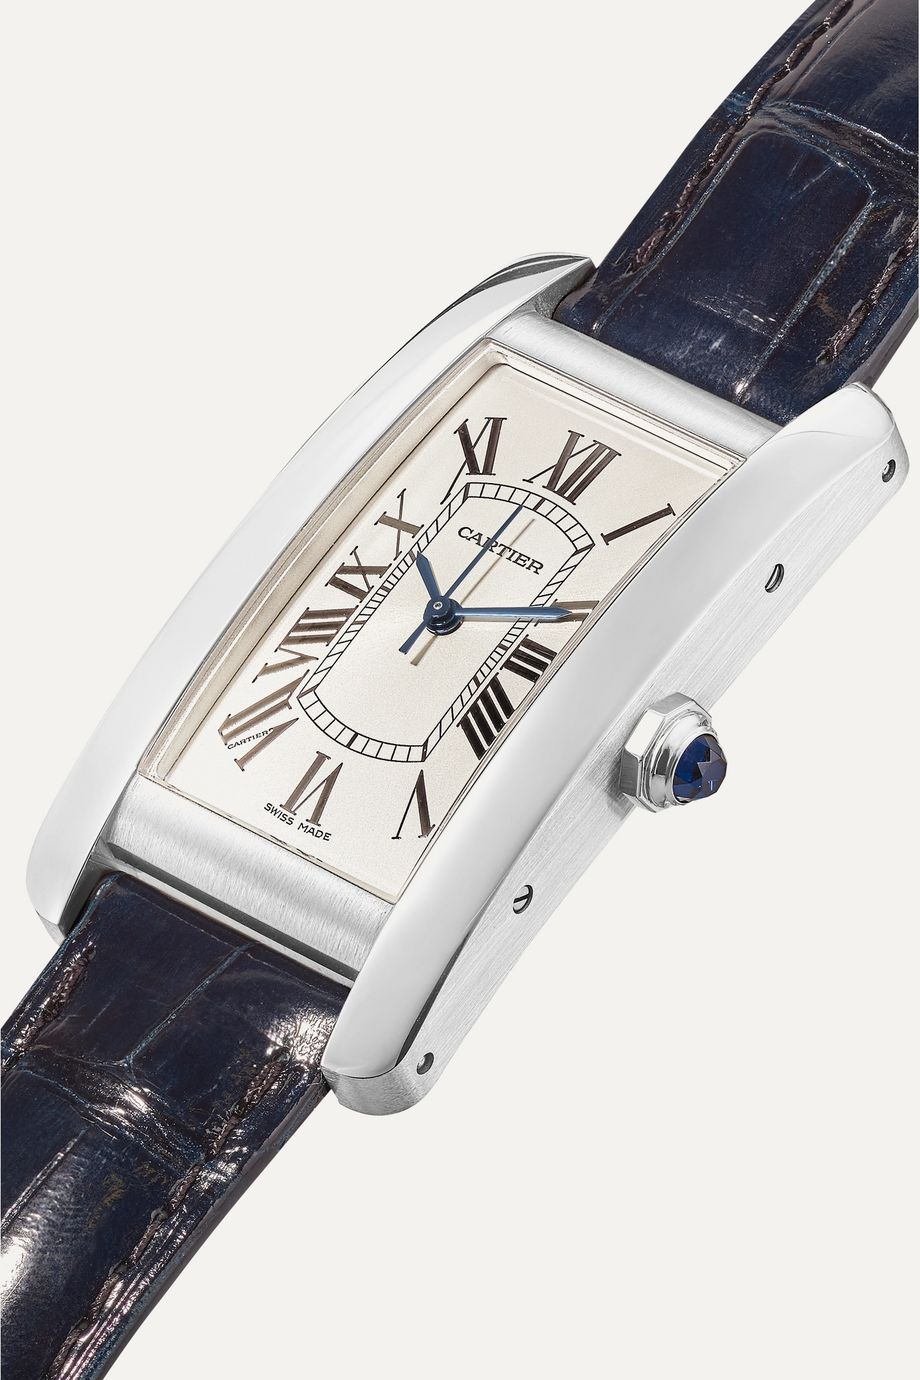 Cartier Montre en acier inoxydable à bracelet en alligator Tank Américaine Medium 22,6 mm